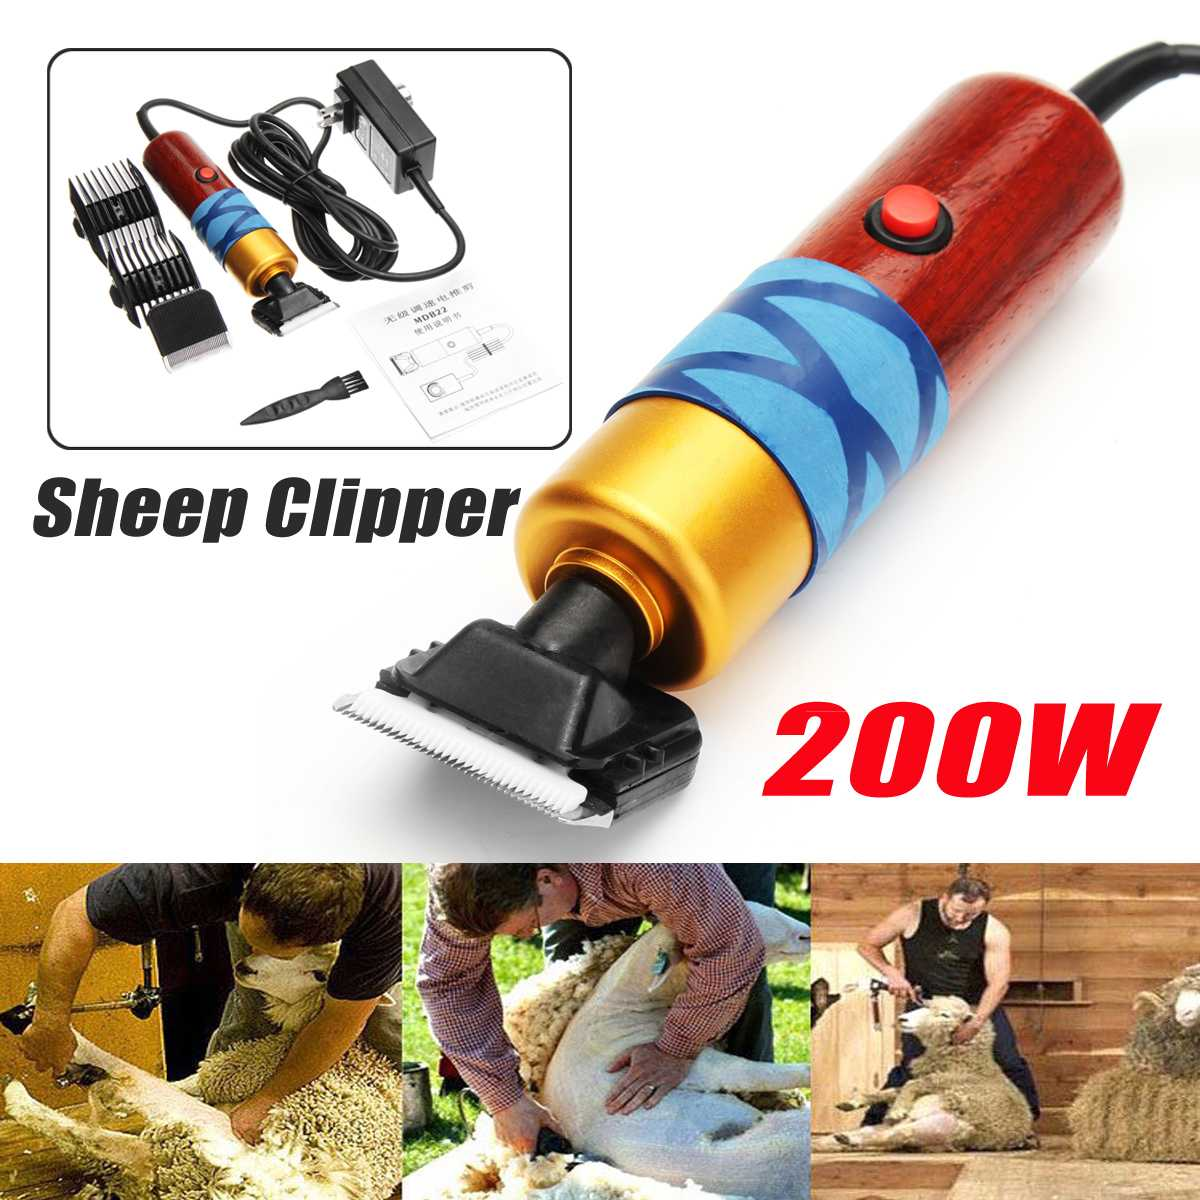 DC12V 200W Electric Shearing Horse Dog Sheep Shear Animal Pet Grooming Clipper Trimmer Hair Trimmer Cutter Pet Clipper enlarge